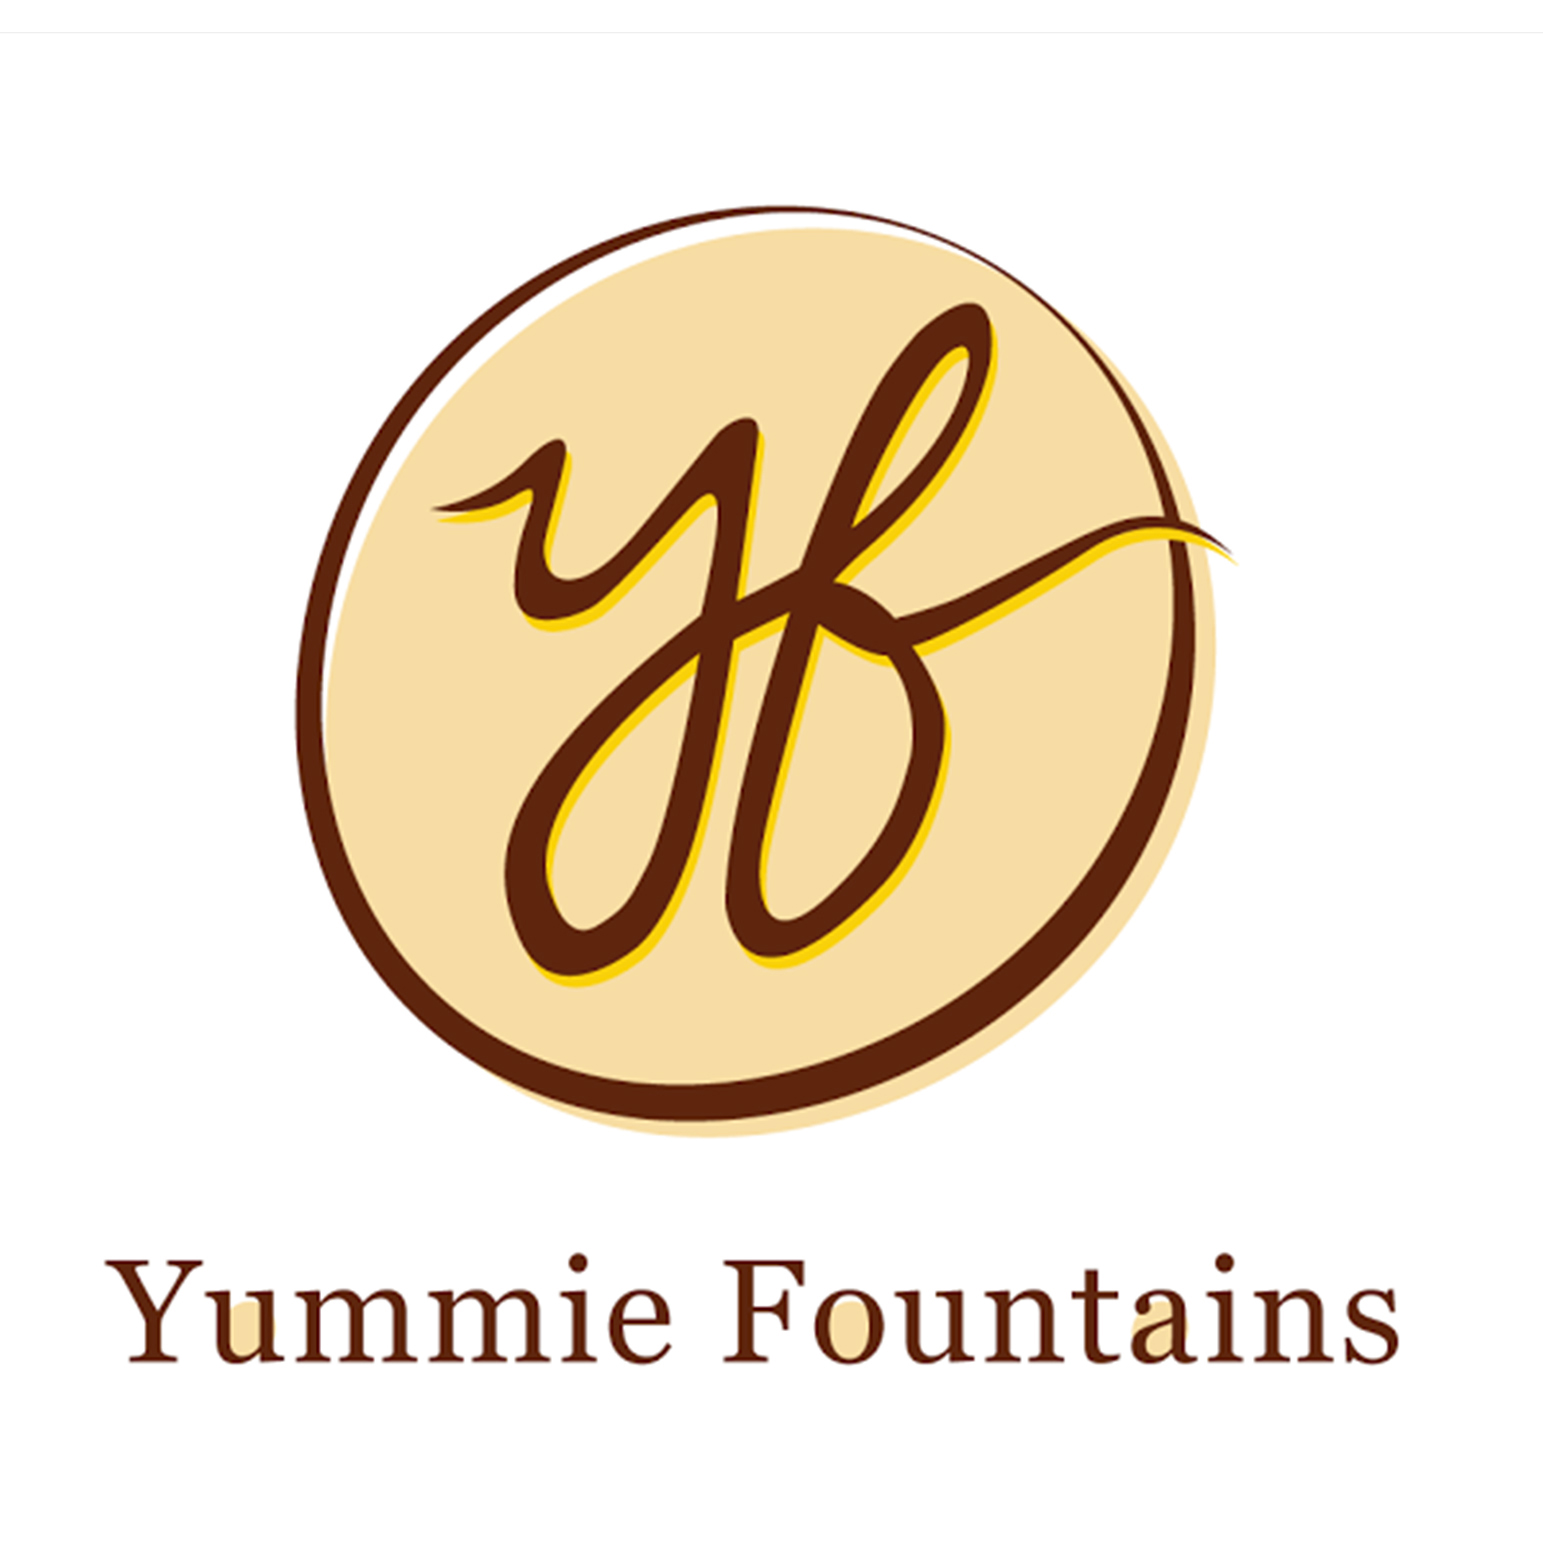 Yummie Fountains